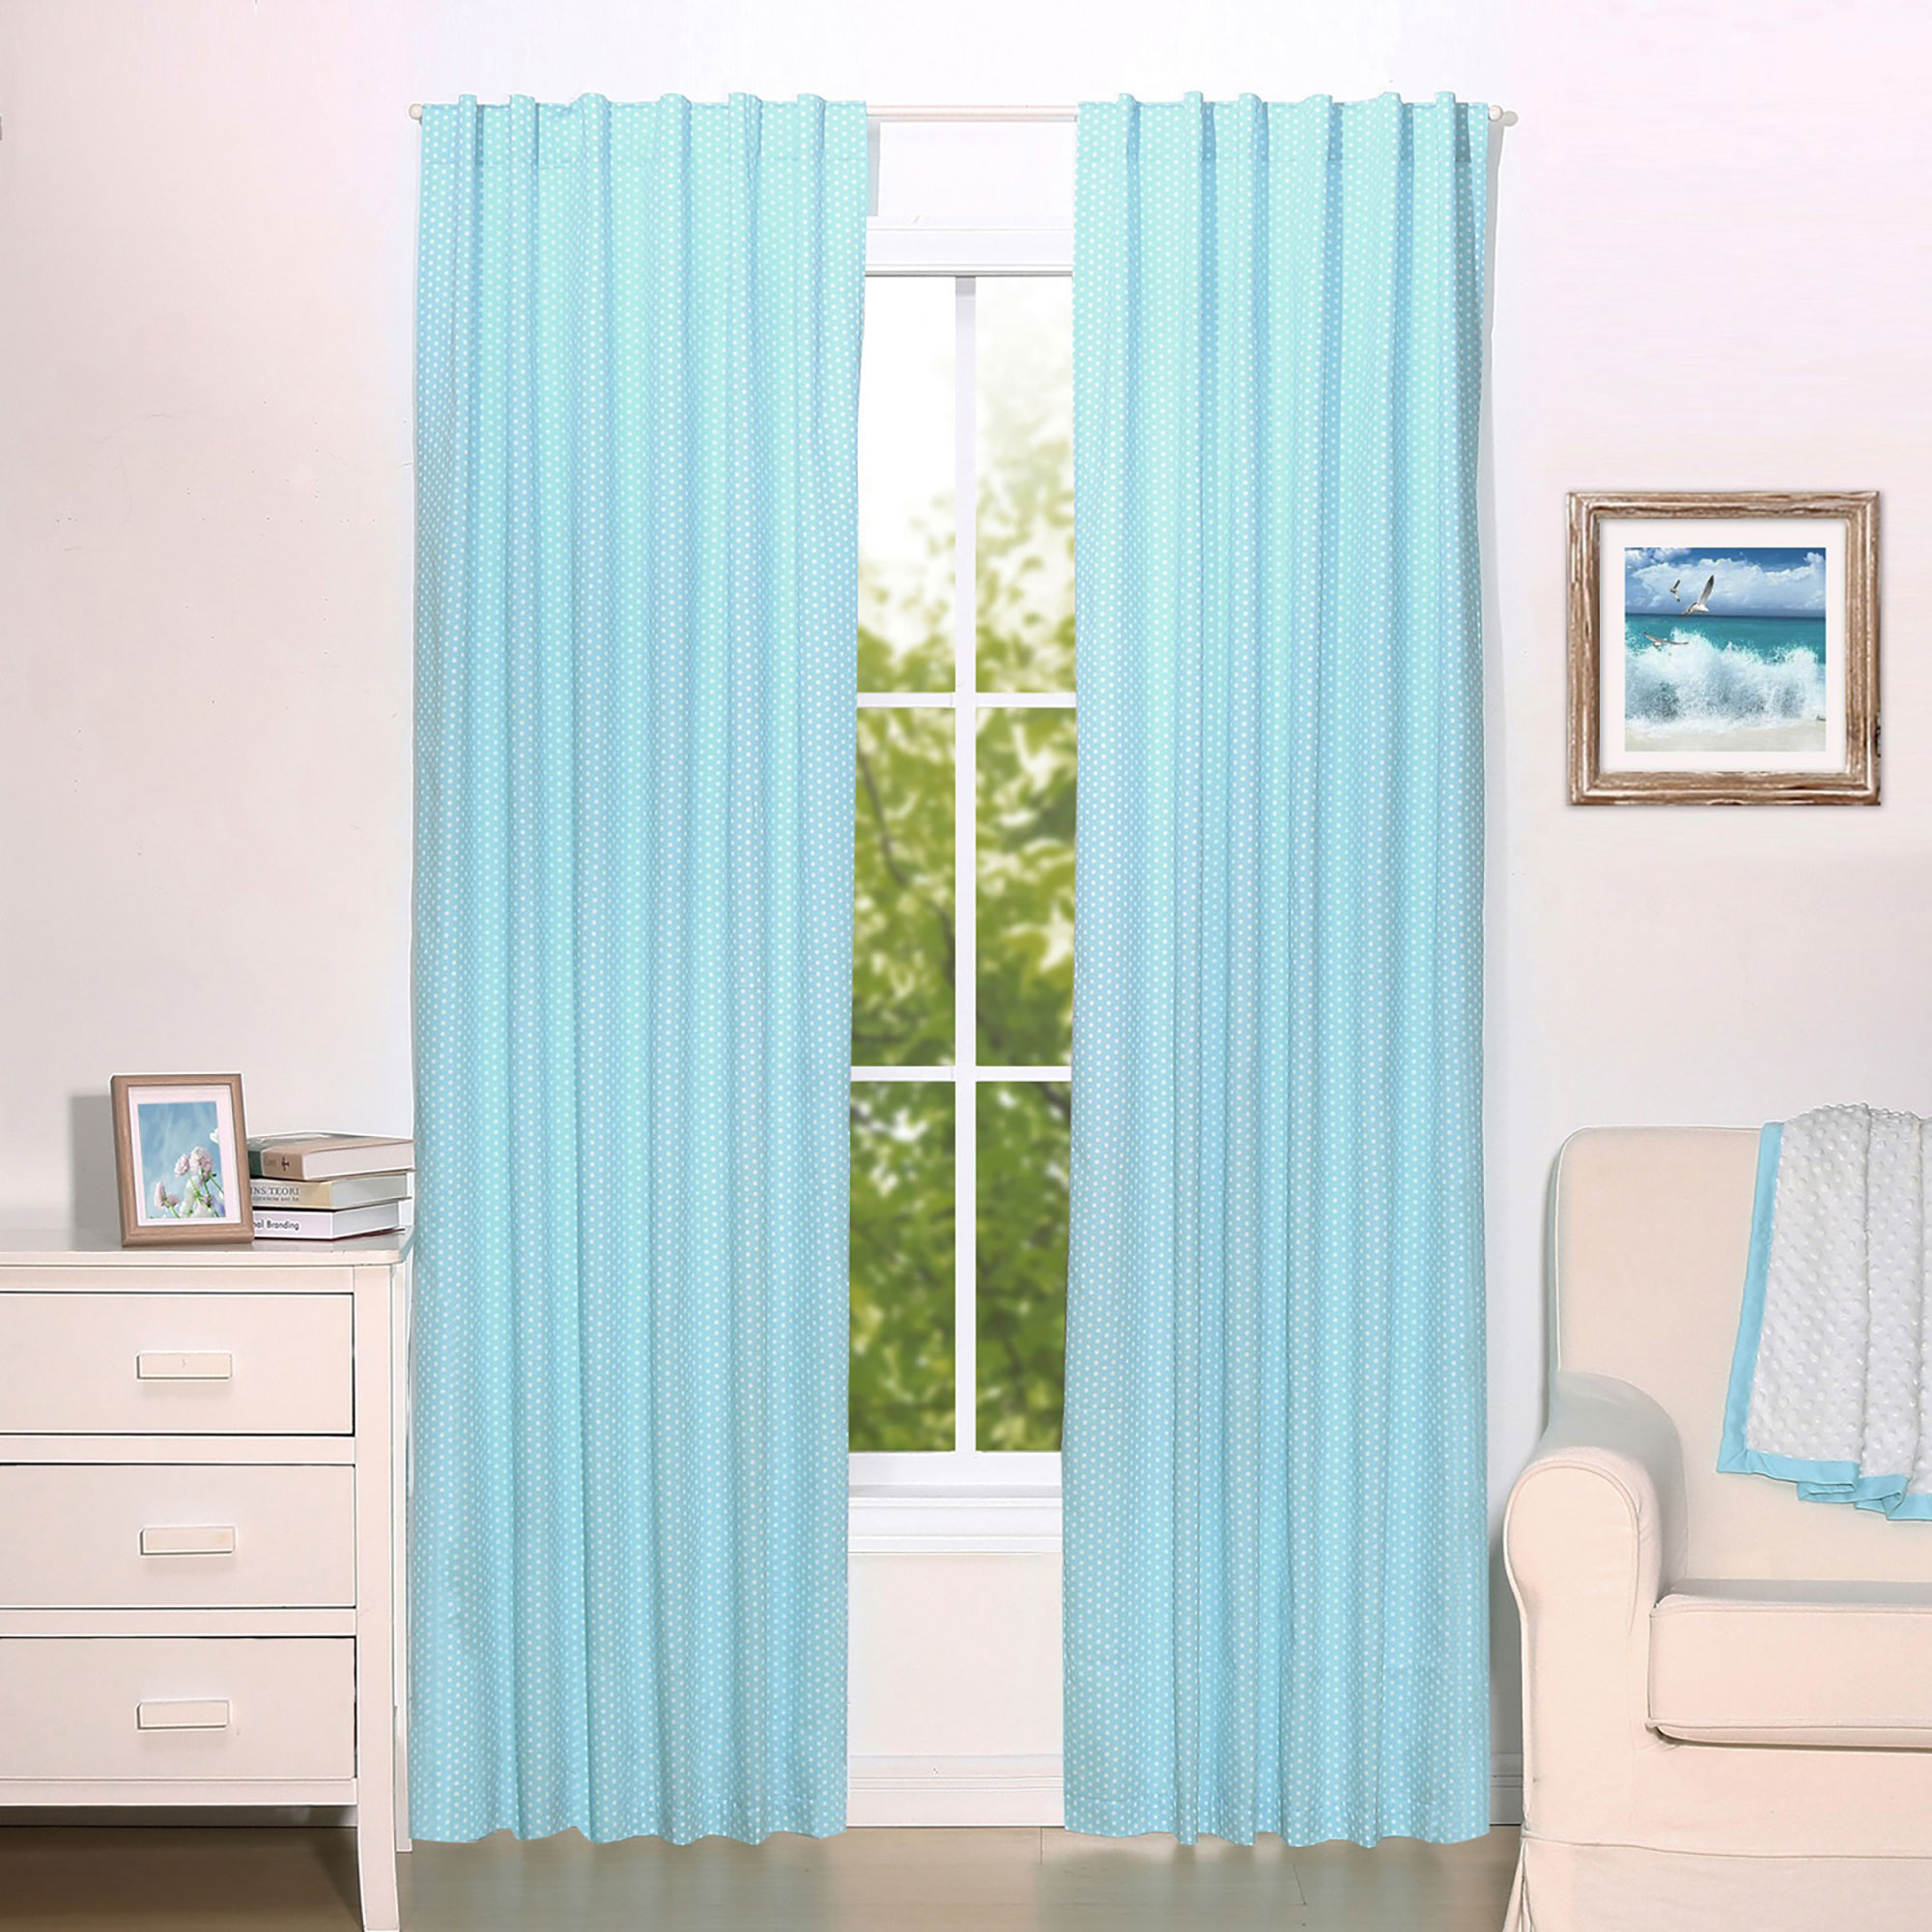 Teal Blue Dot Print Blackout Window Drapery Panels - Two 84 x 42 Inch Panels